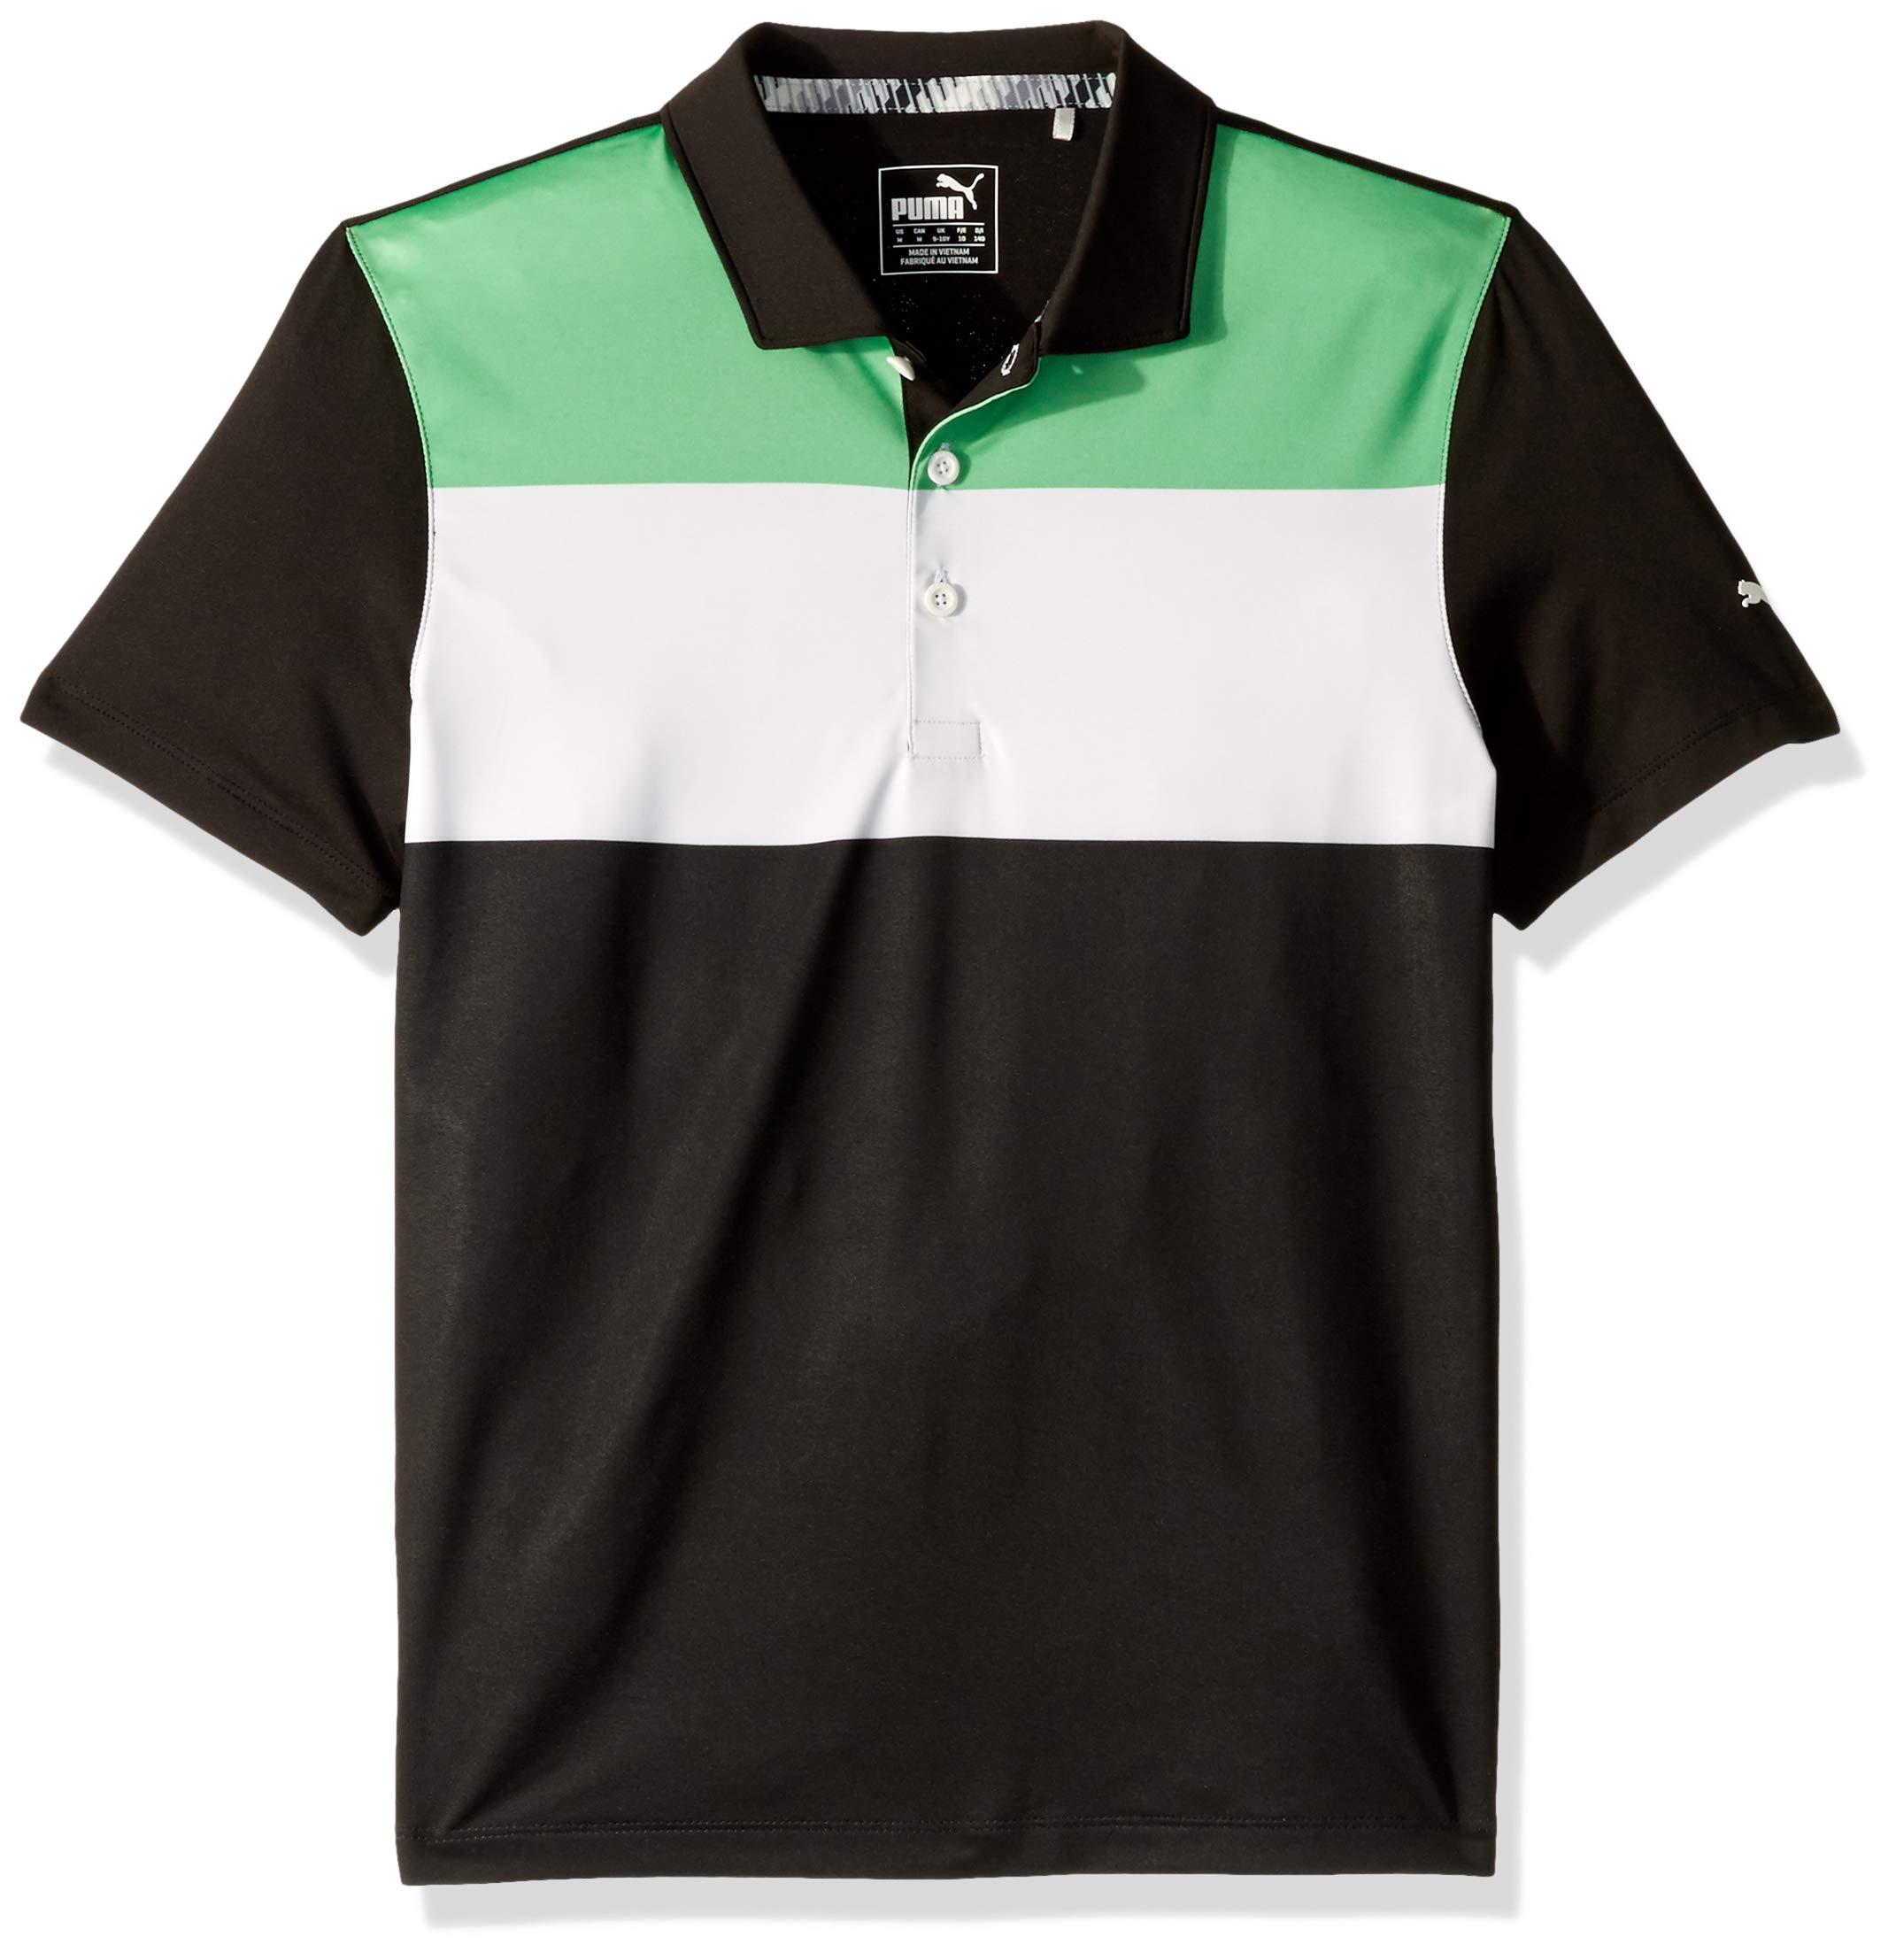 Puma Golf Boys 2019 Nineties Polo, Irish Green-Puma Black, Large by PUMA